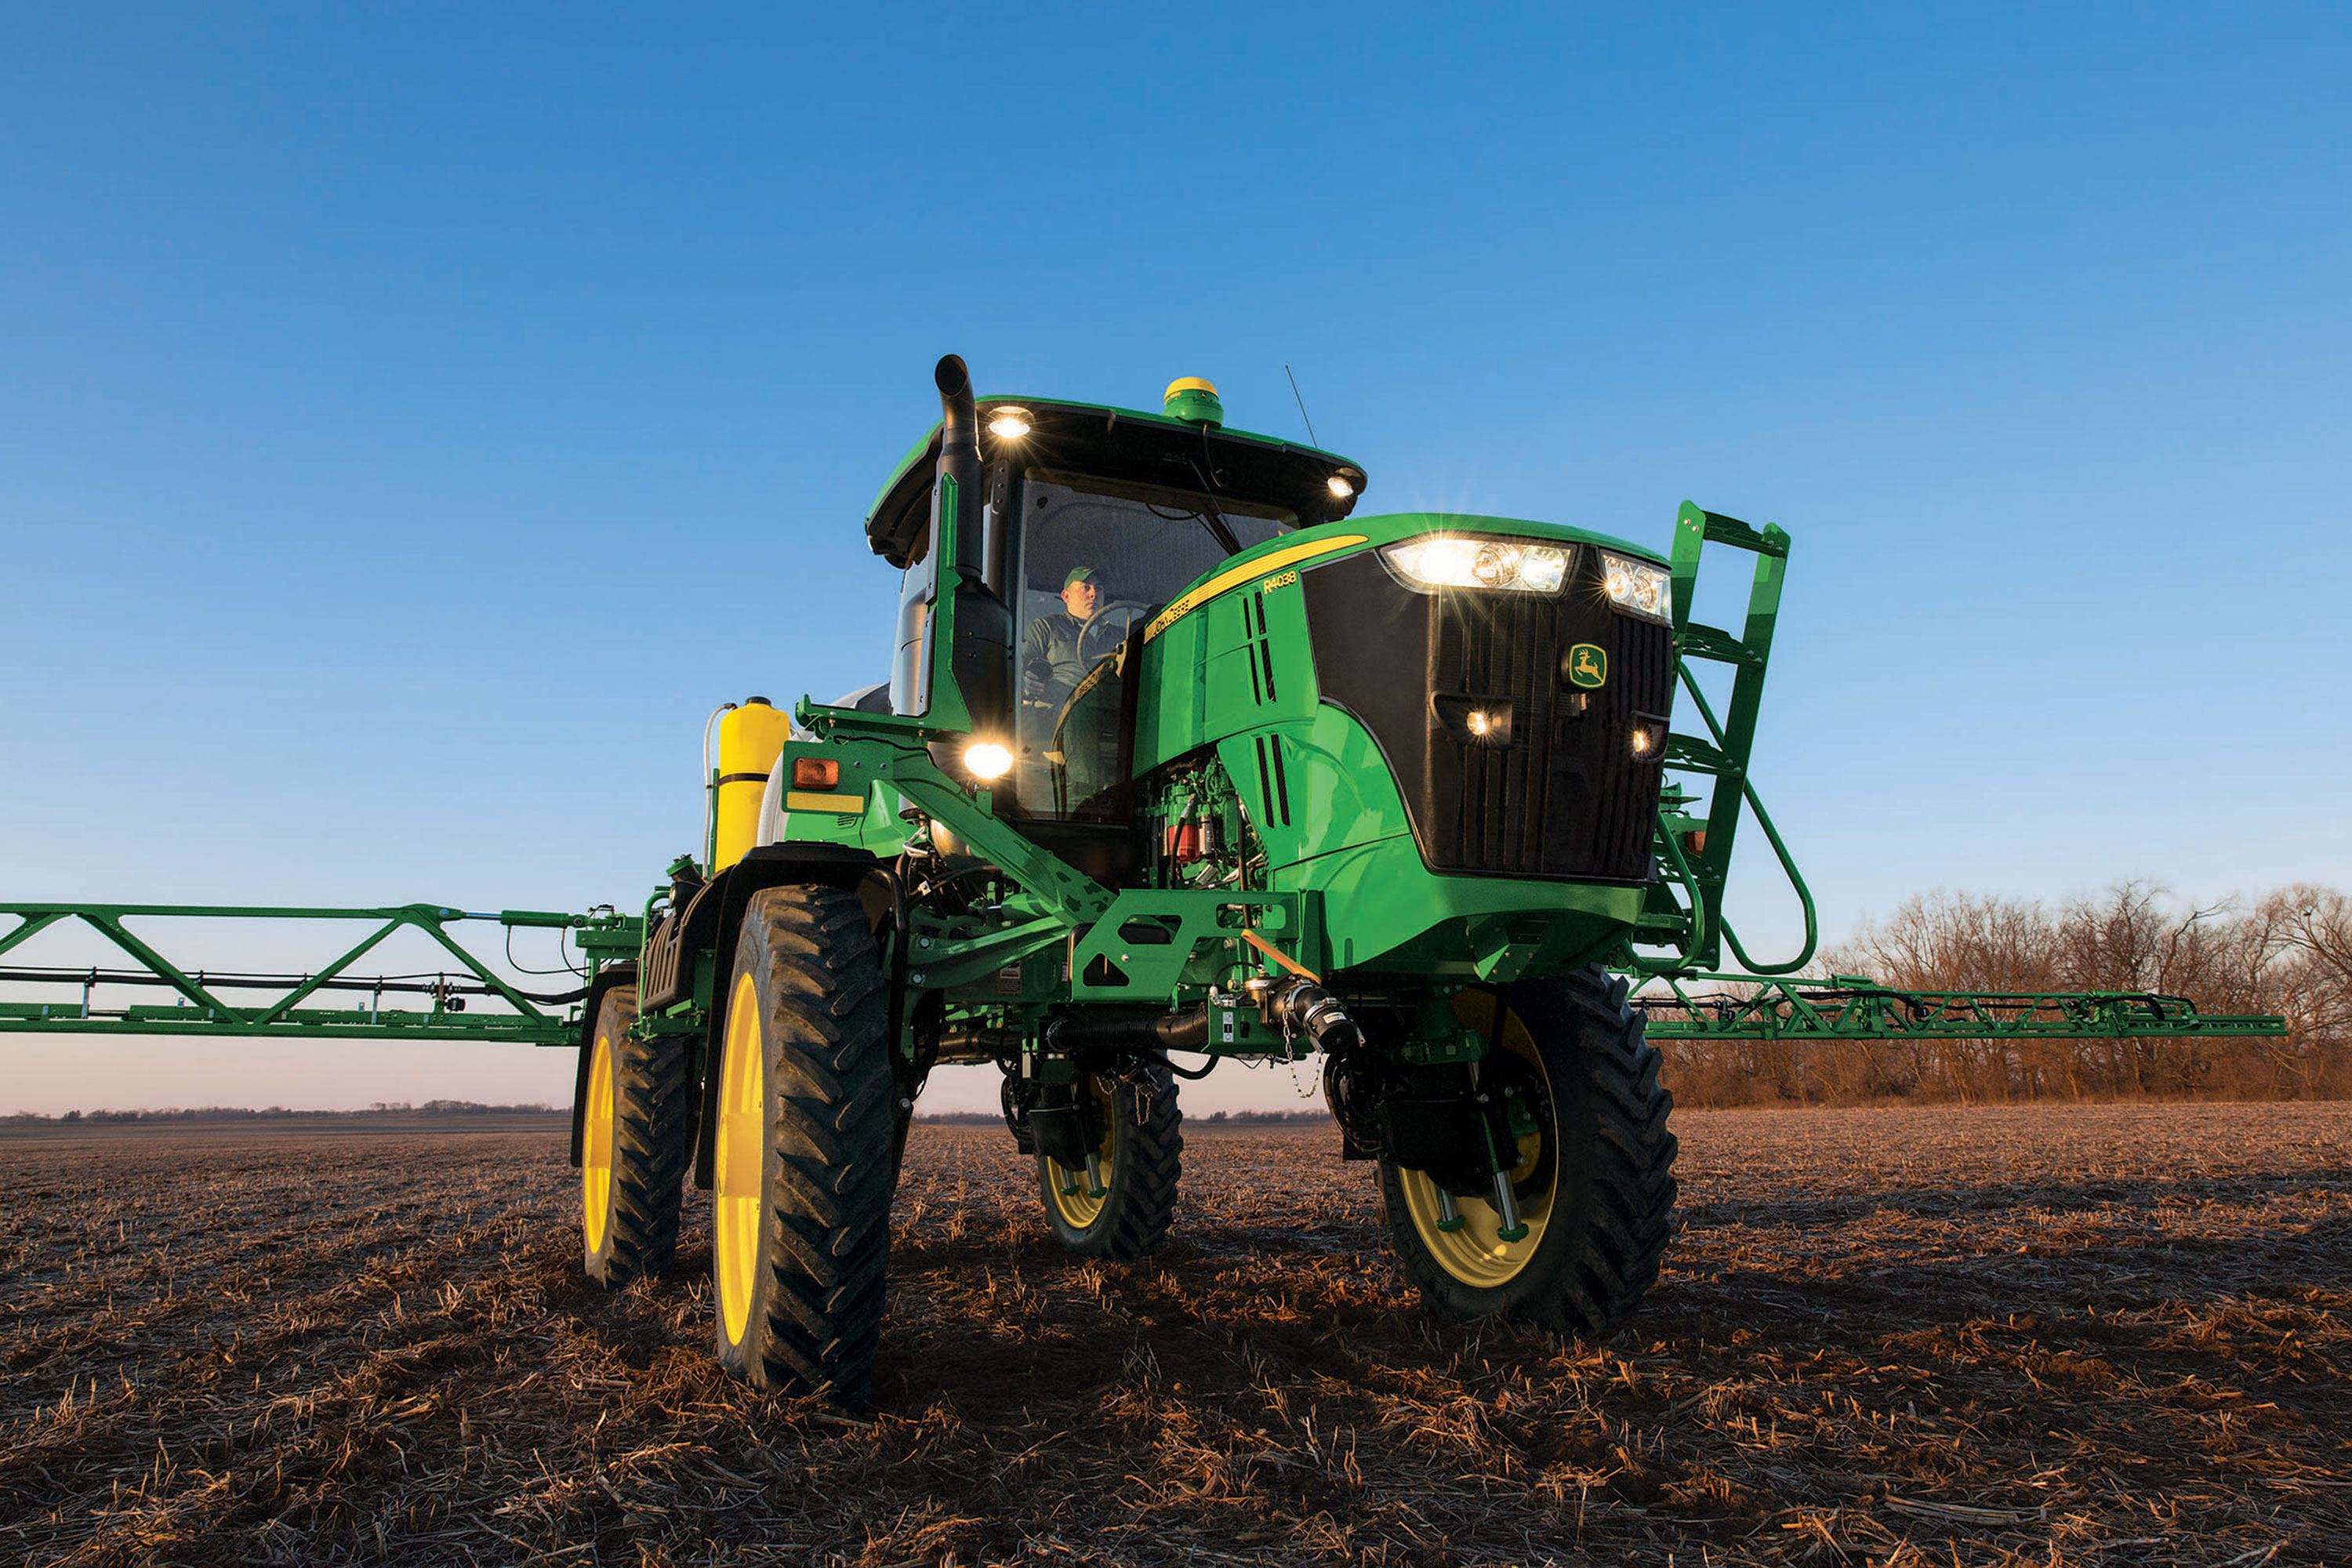 Image Gallery: 25 John Deere Sprayer Pictures to Promote ...